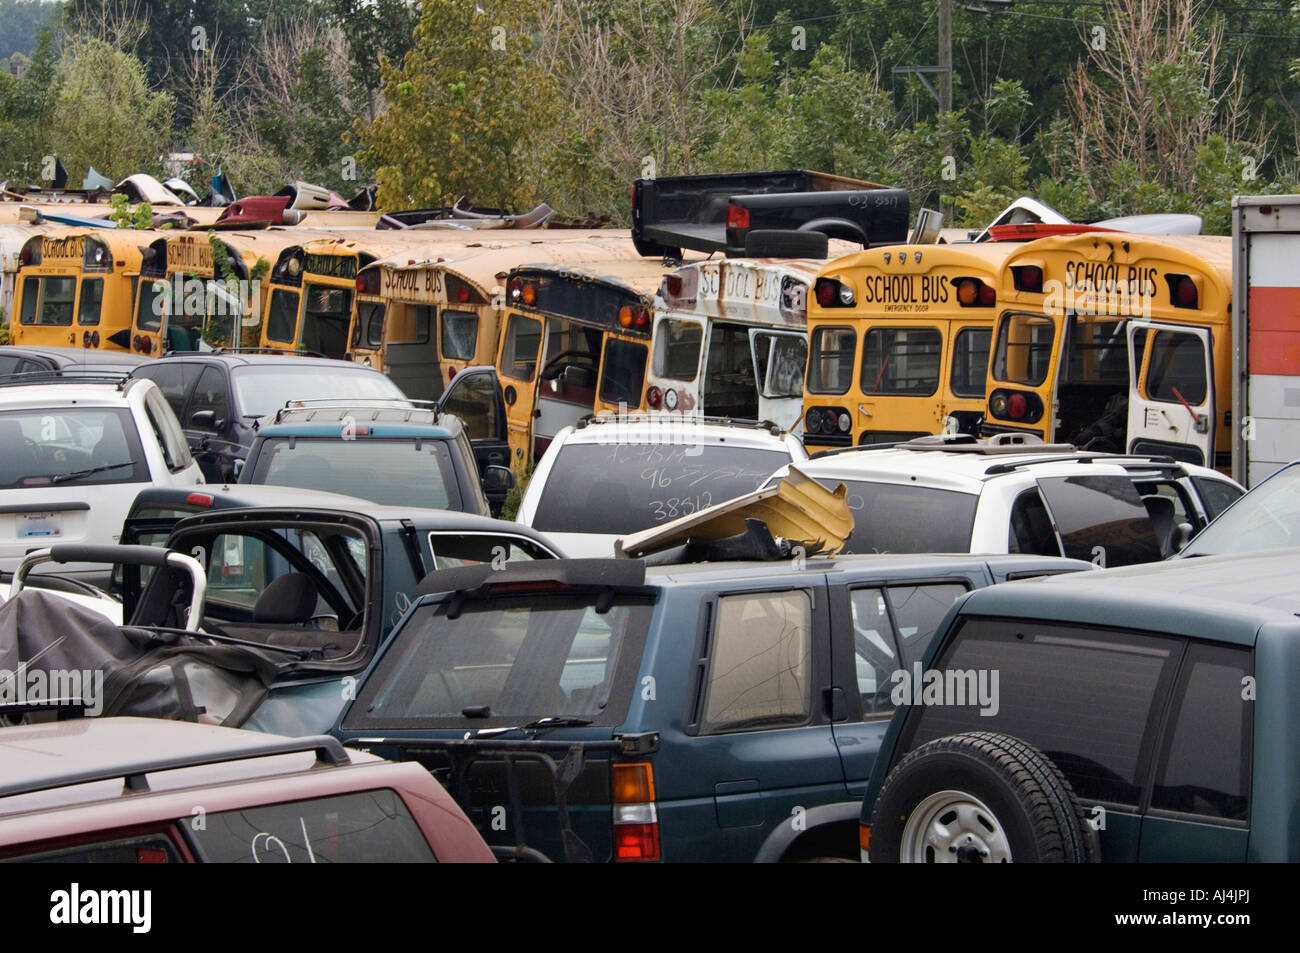 Vehicles including School Buses in Auto Salvage Yard